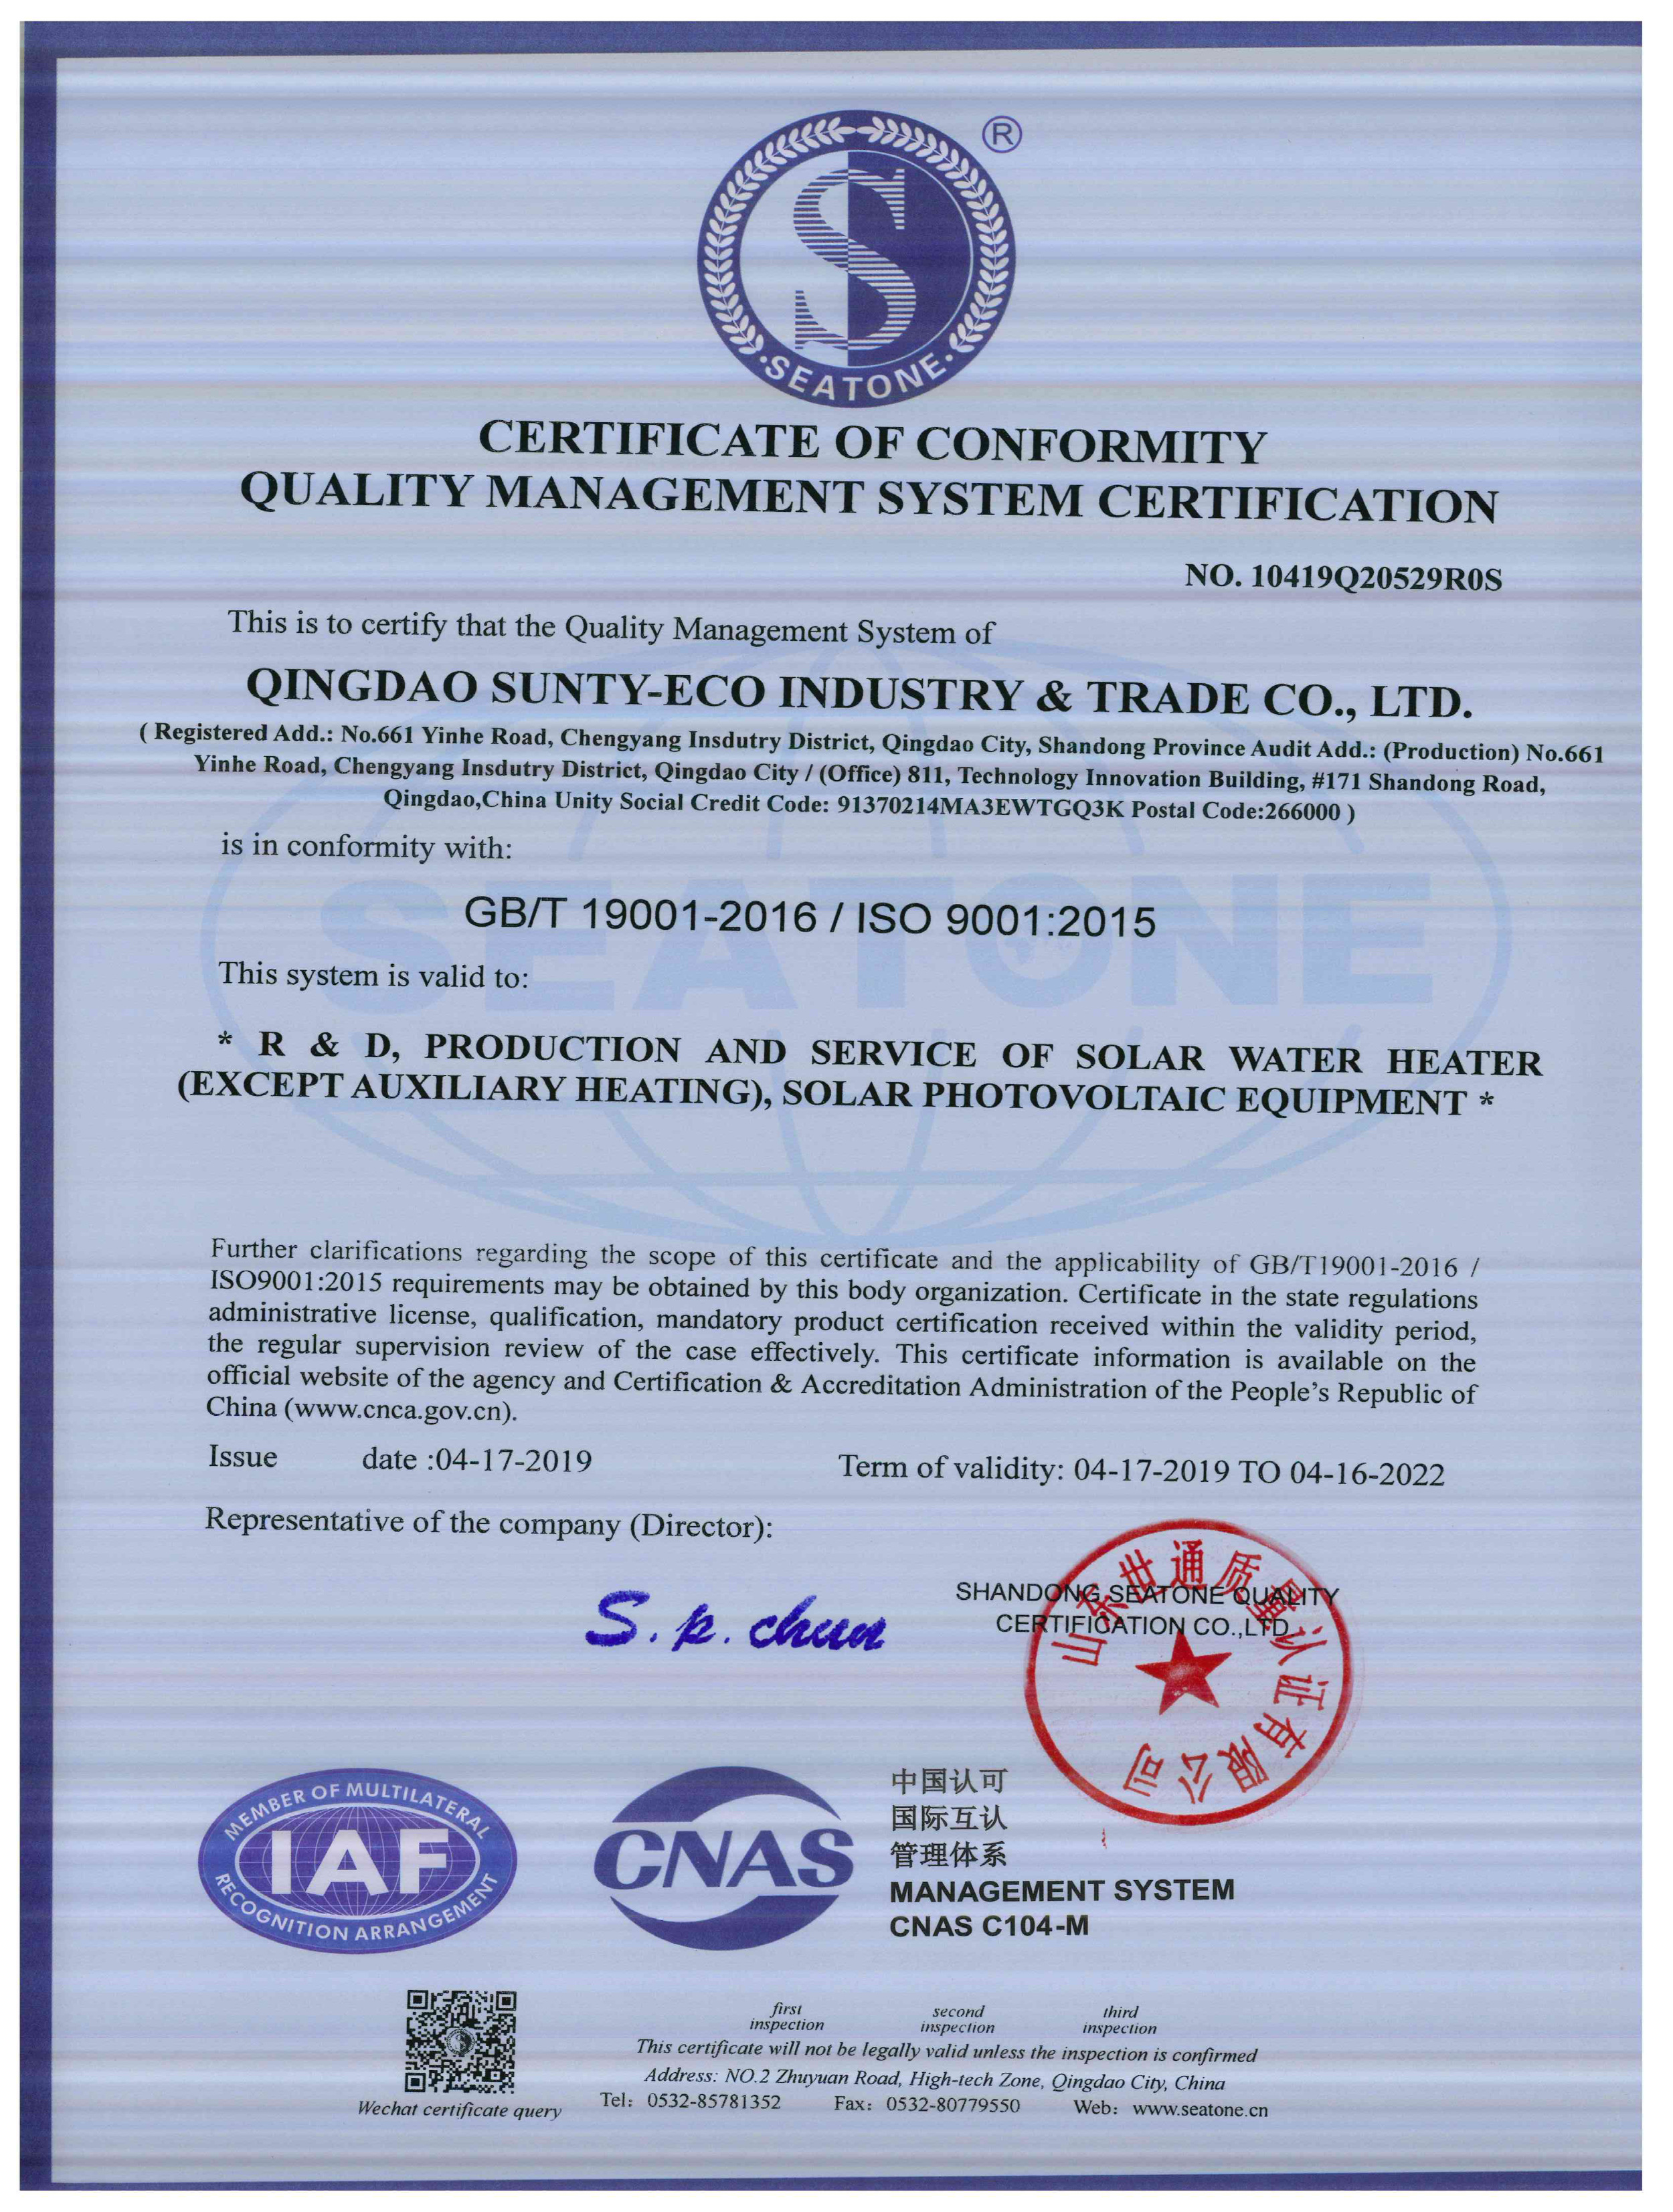 SUNTY ECO ISO 9001 CERTIFICATION